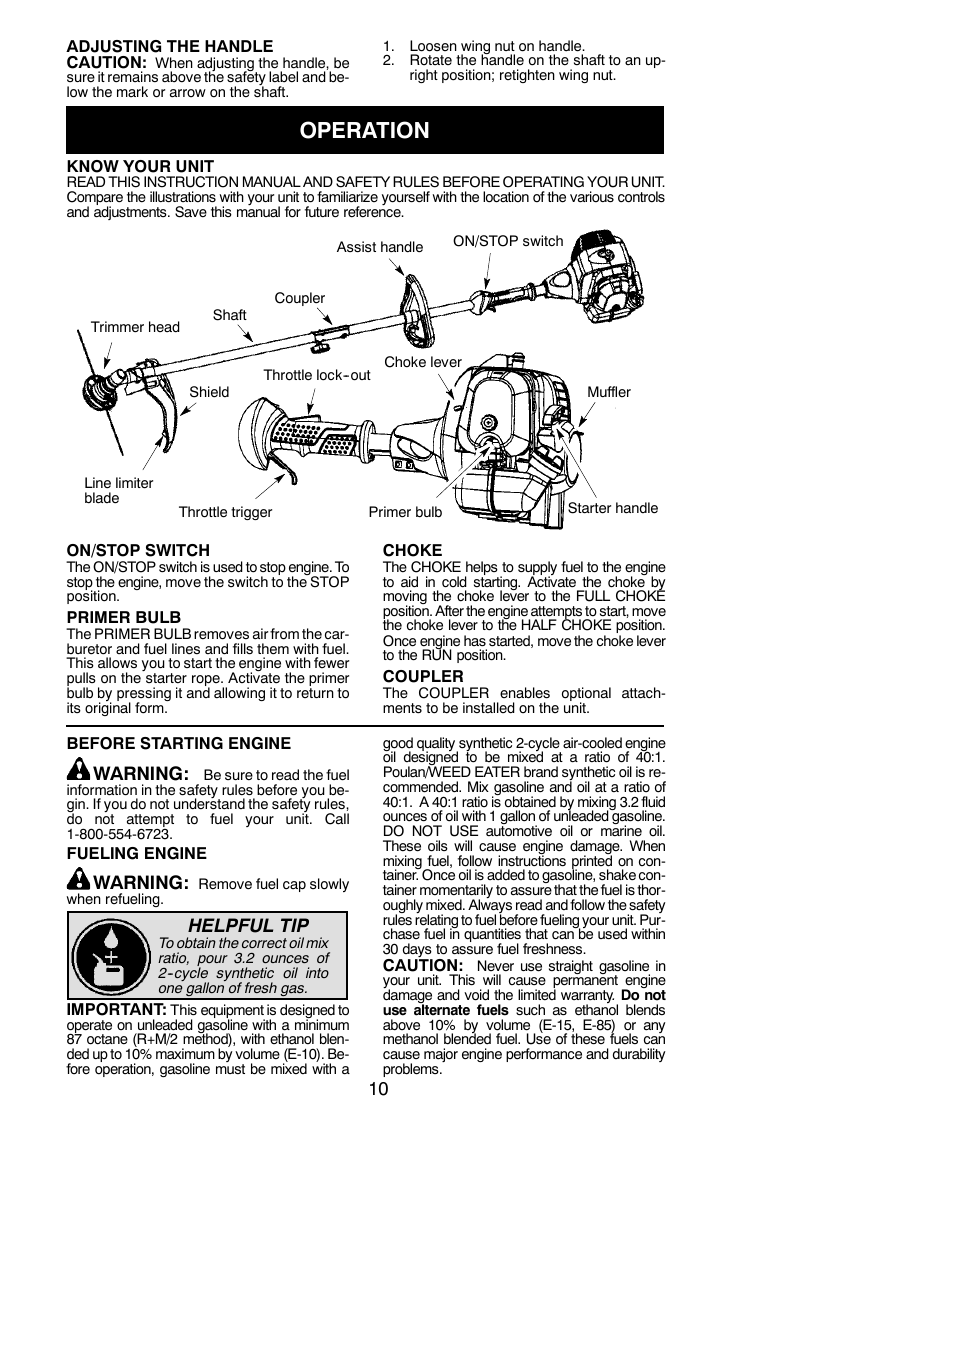 operation poulan pro pp130 user manual page 10 60 rh manualsdir com Weed Eater Parts Diagram Poulan Pro Weed Eater Gas Line Diagram